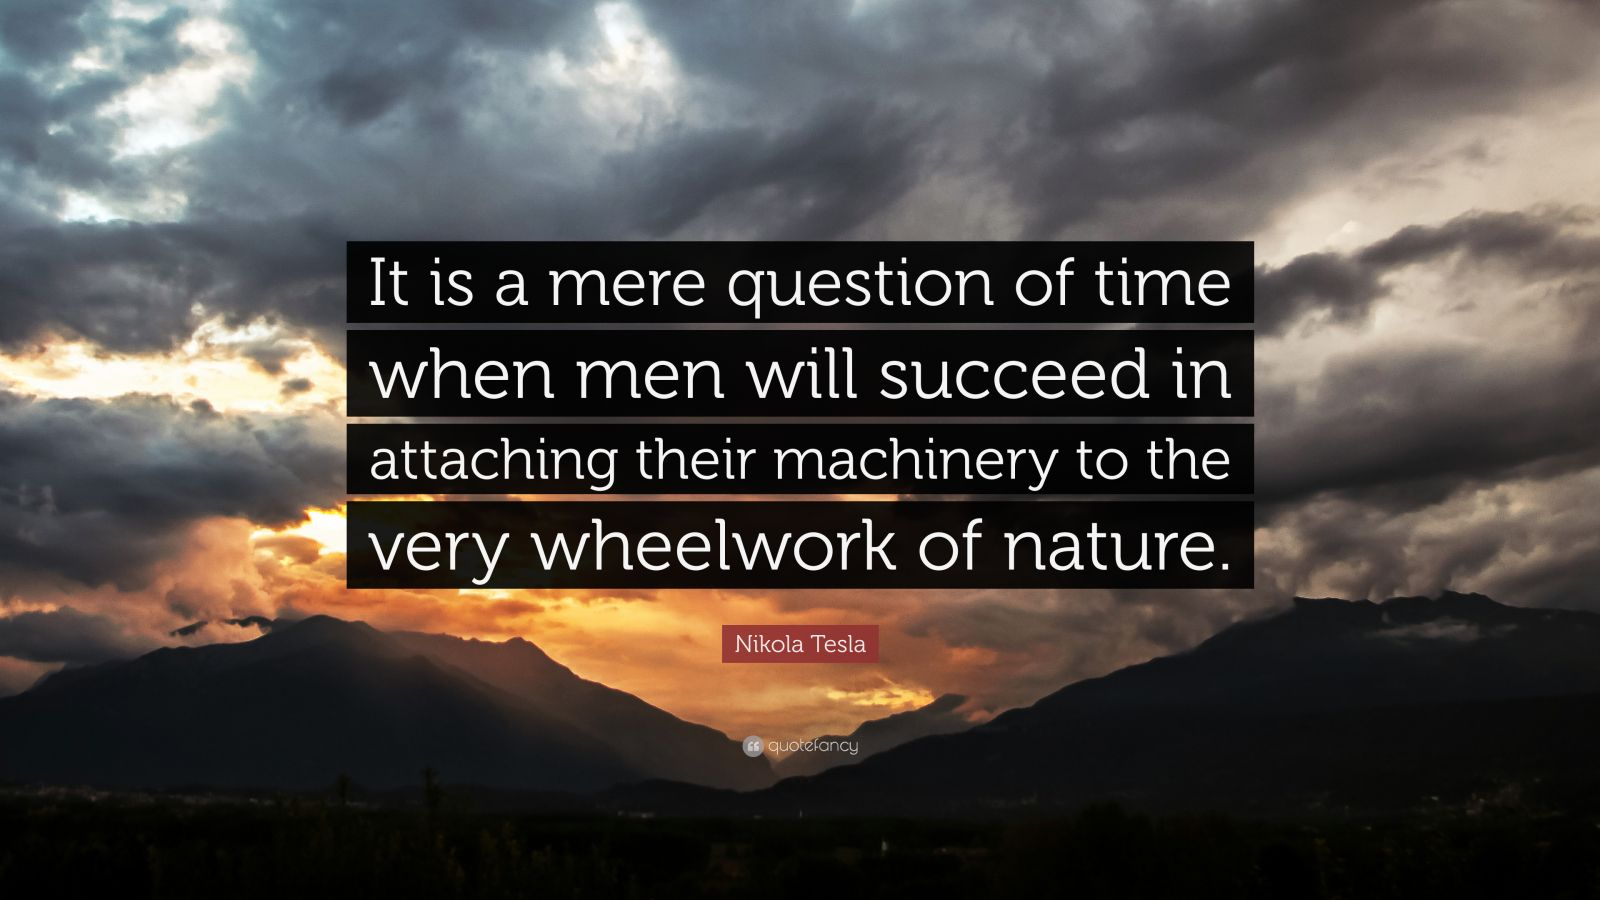 """Nikola Tesla Quote: """"It is a mere question of time when men will succeed in attaching their machinery to the very wheelwork of nature."""""""